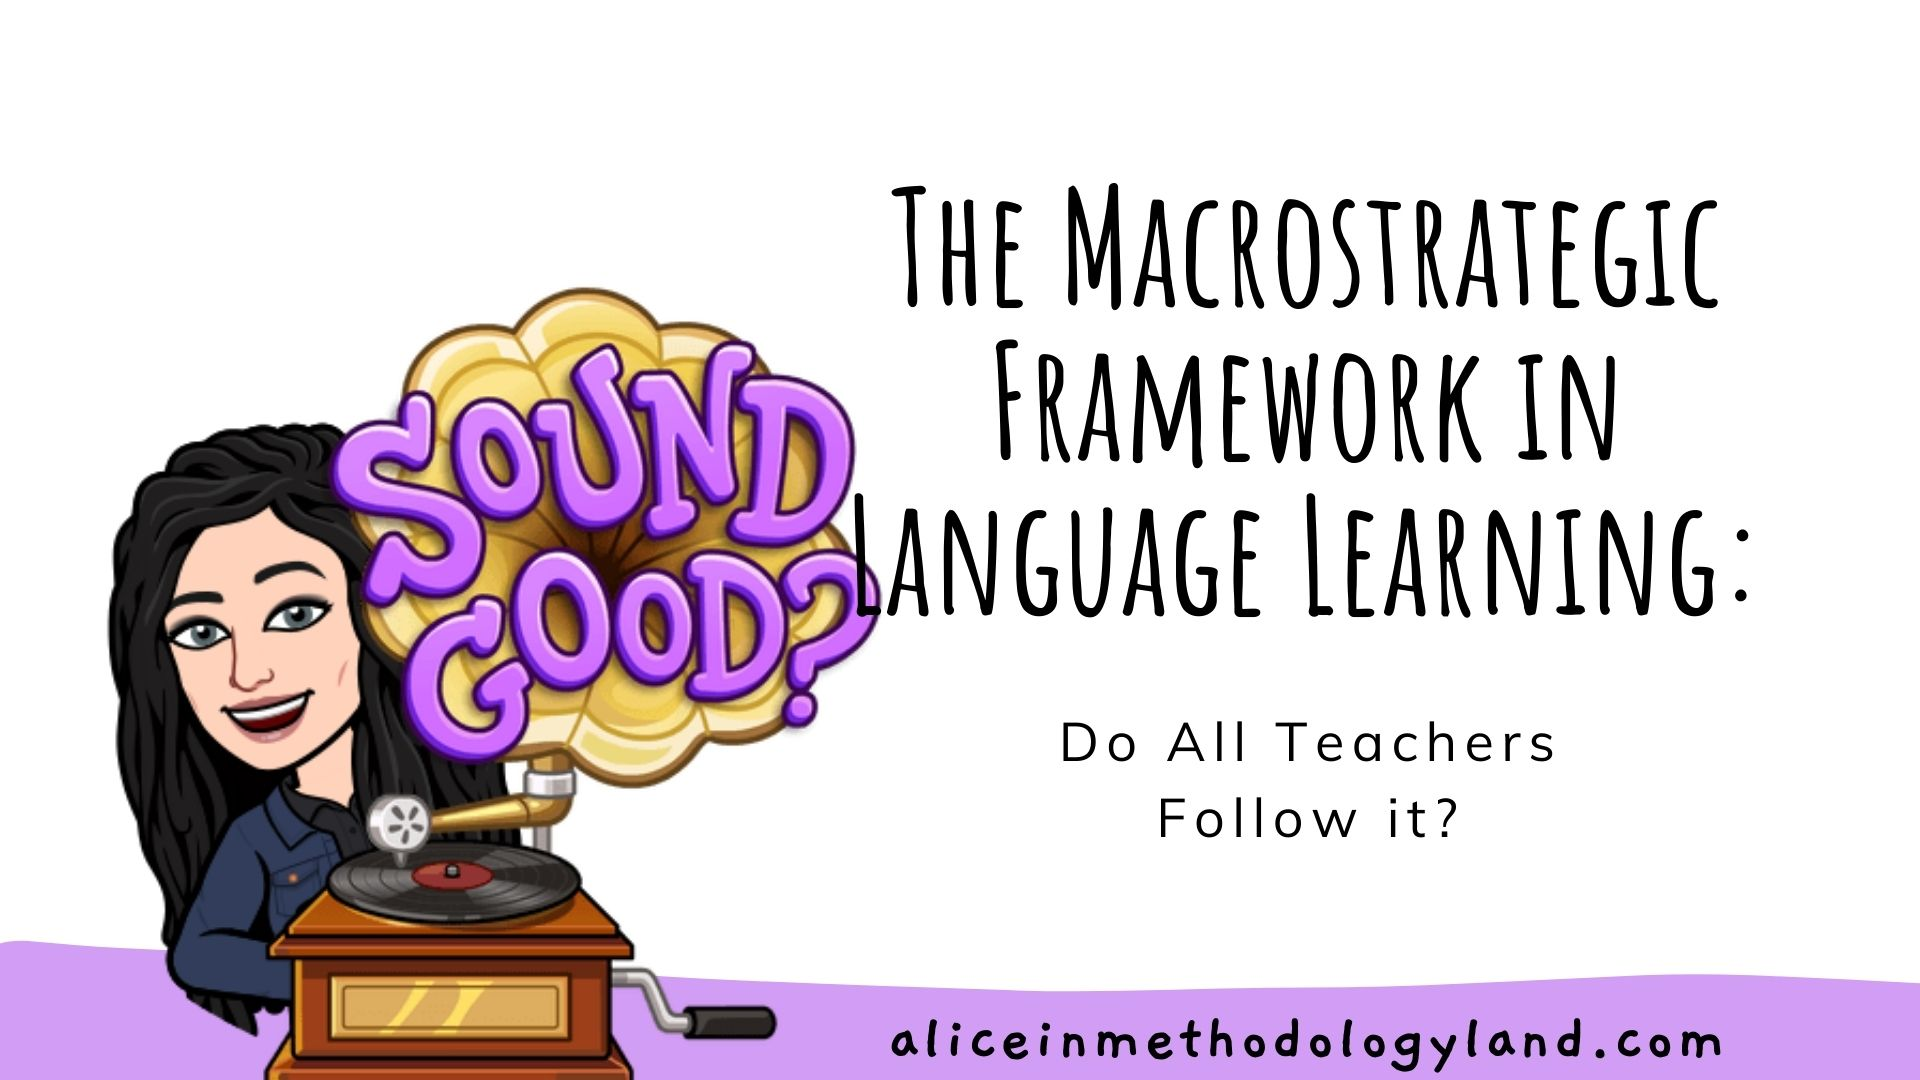 The Macrostrategic Framework in Language Learning: Do all Teachers Follow it?